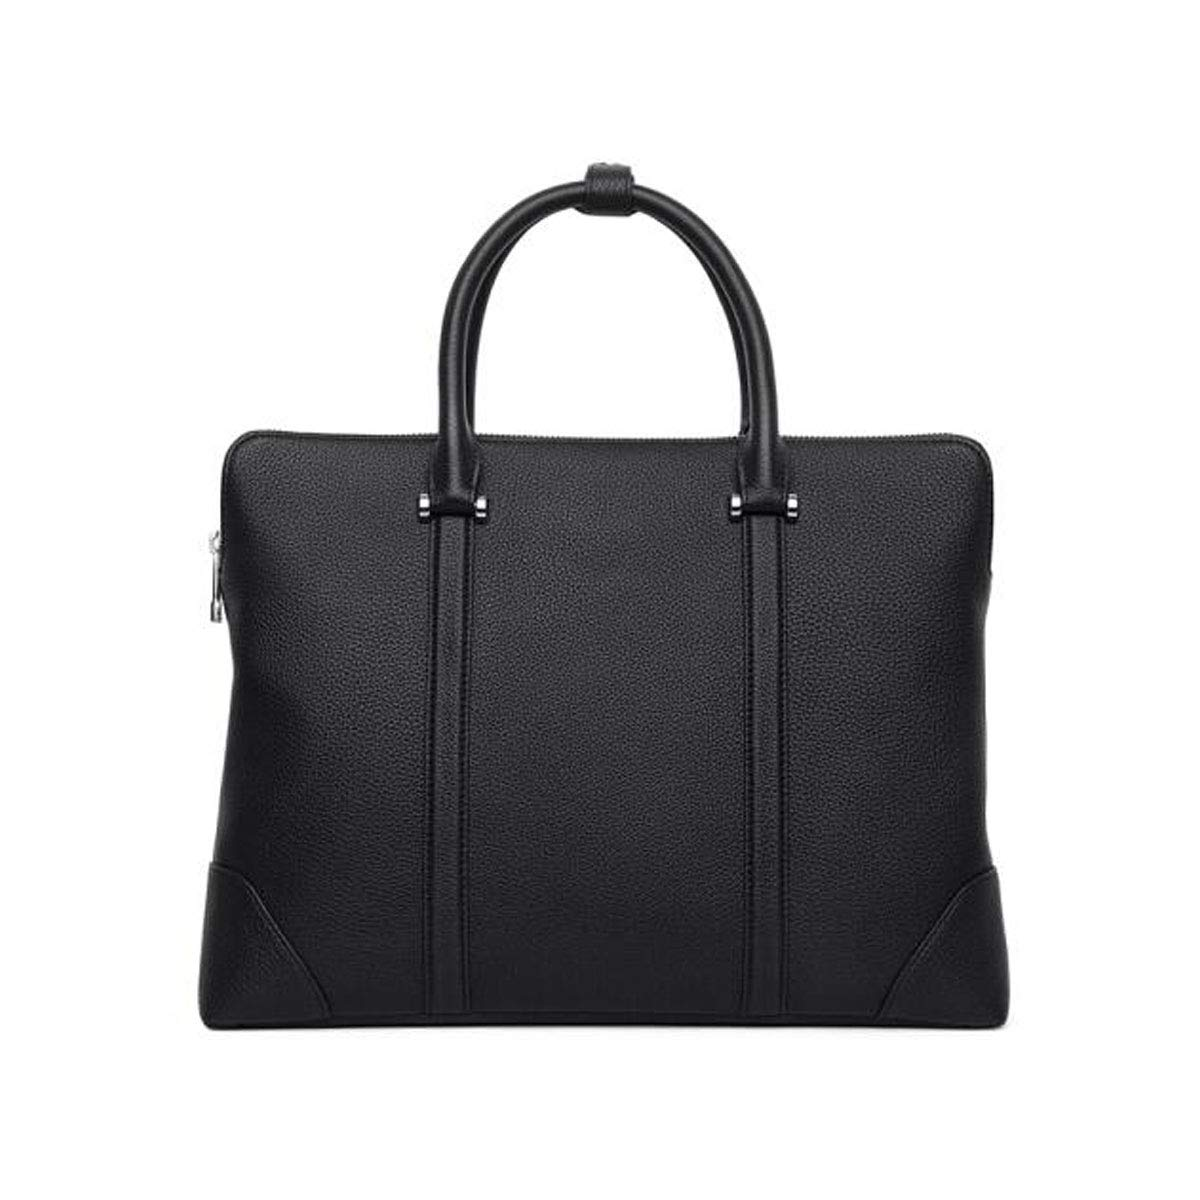 Briefcase Black Size: 36627.5cm Mens Business Tote Large-capacity Computer Bag